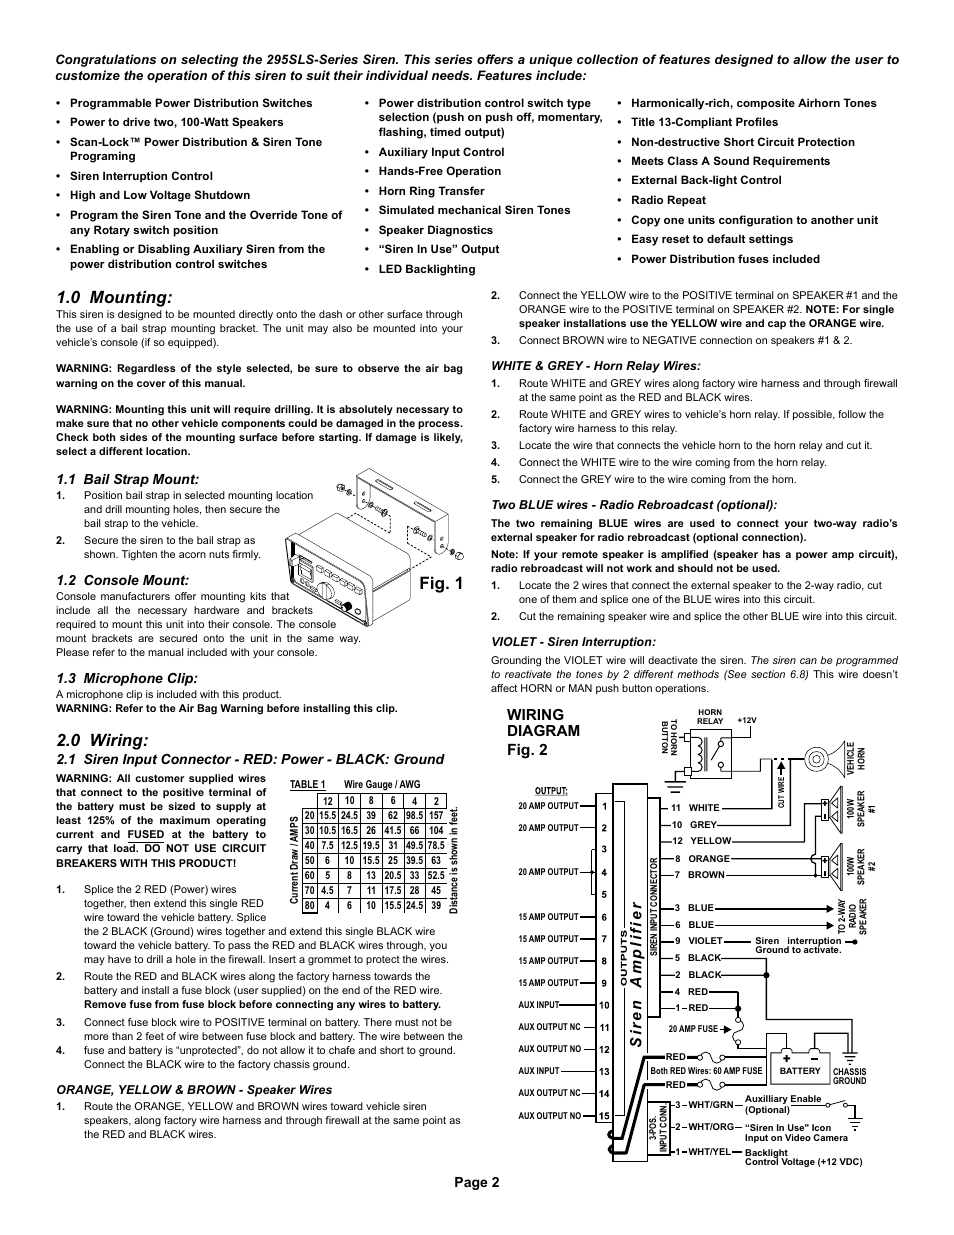 Whelen Radio Wiring - Wiring Diagram Name on